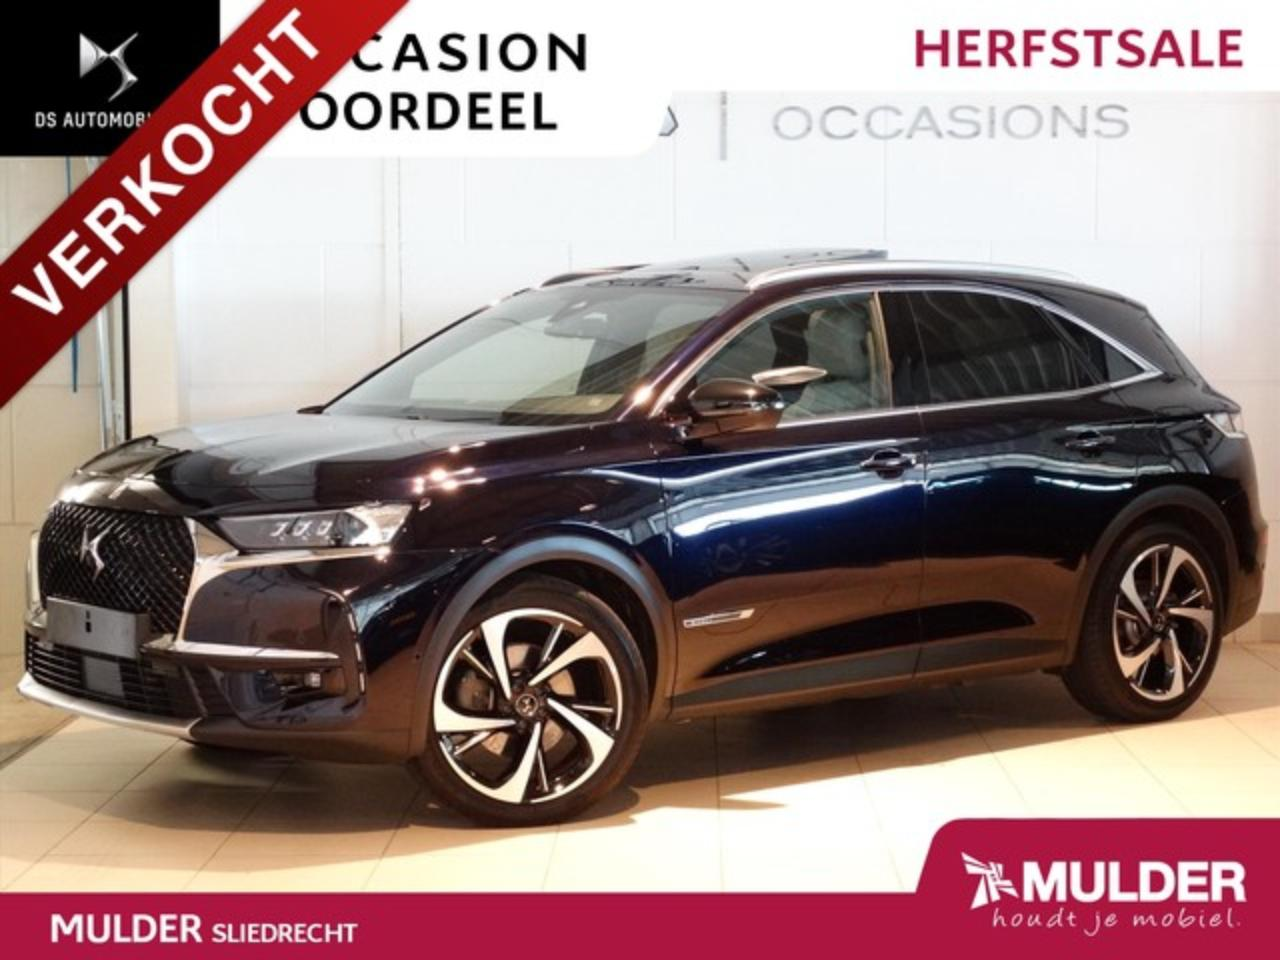 Ds DS 7 Crossback GRAND CHIC RIVOLI E-TENSE 4x4 300pk EAT8 PHEV SCHU